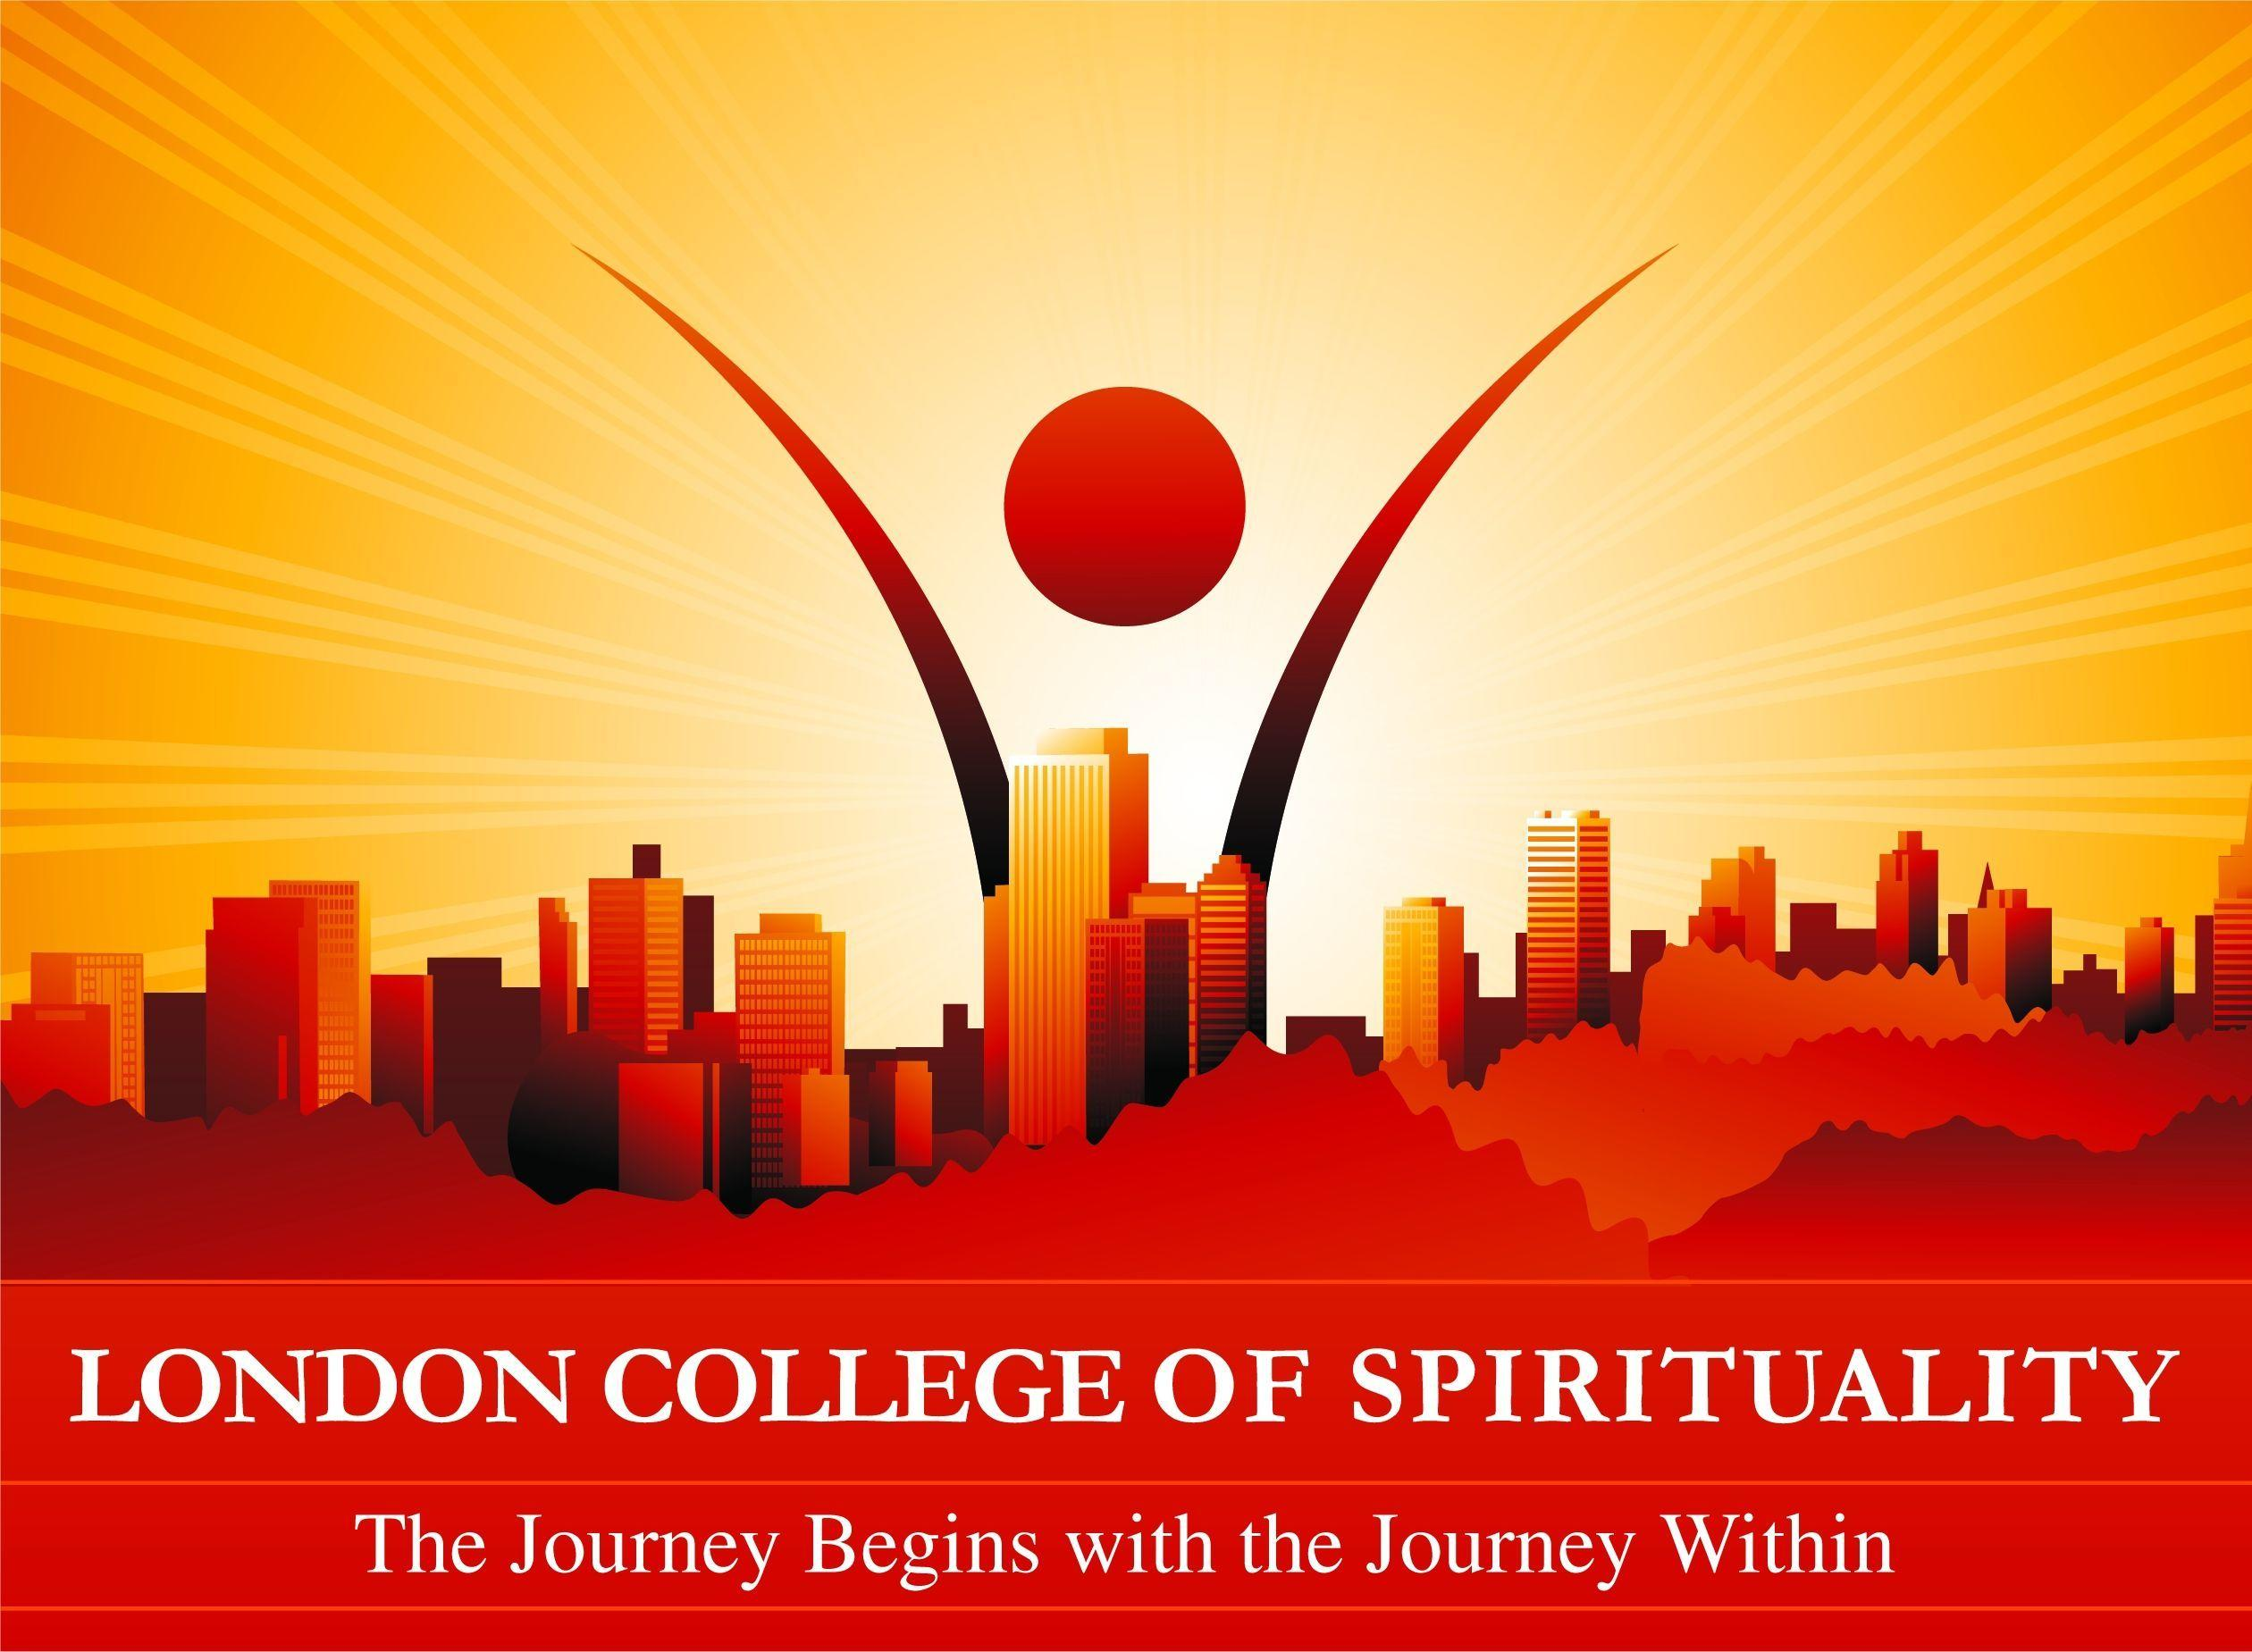 college of spirituality Listen as ken, alexander, and helen discuss the complex role of spirituality among college students integral life basics integrative metatheory leadership.